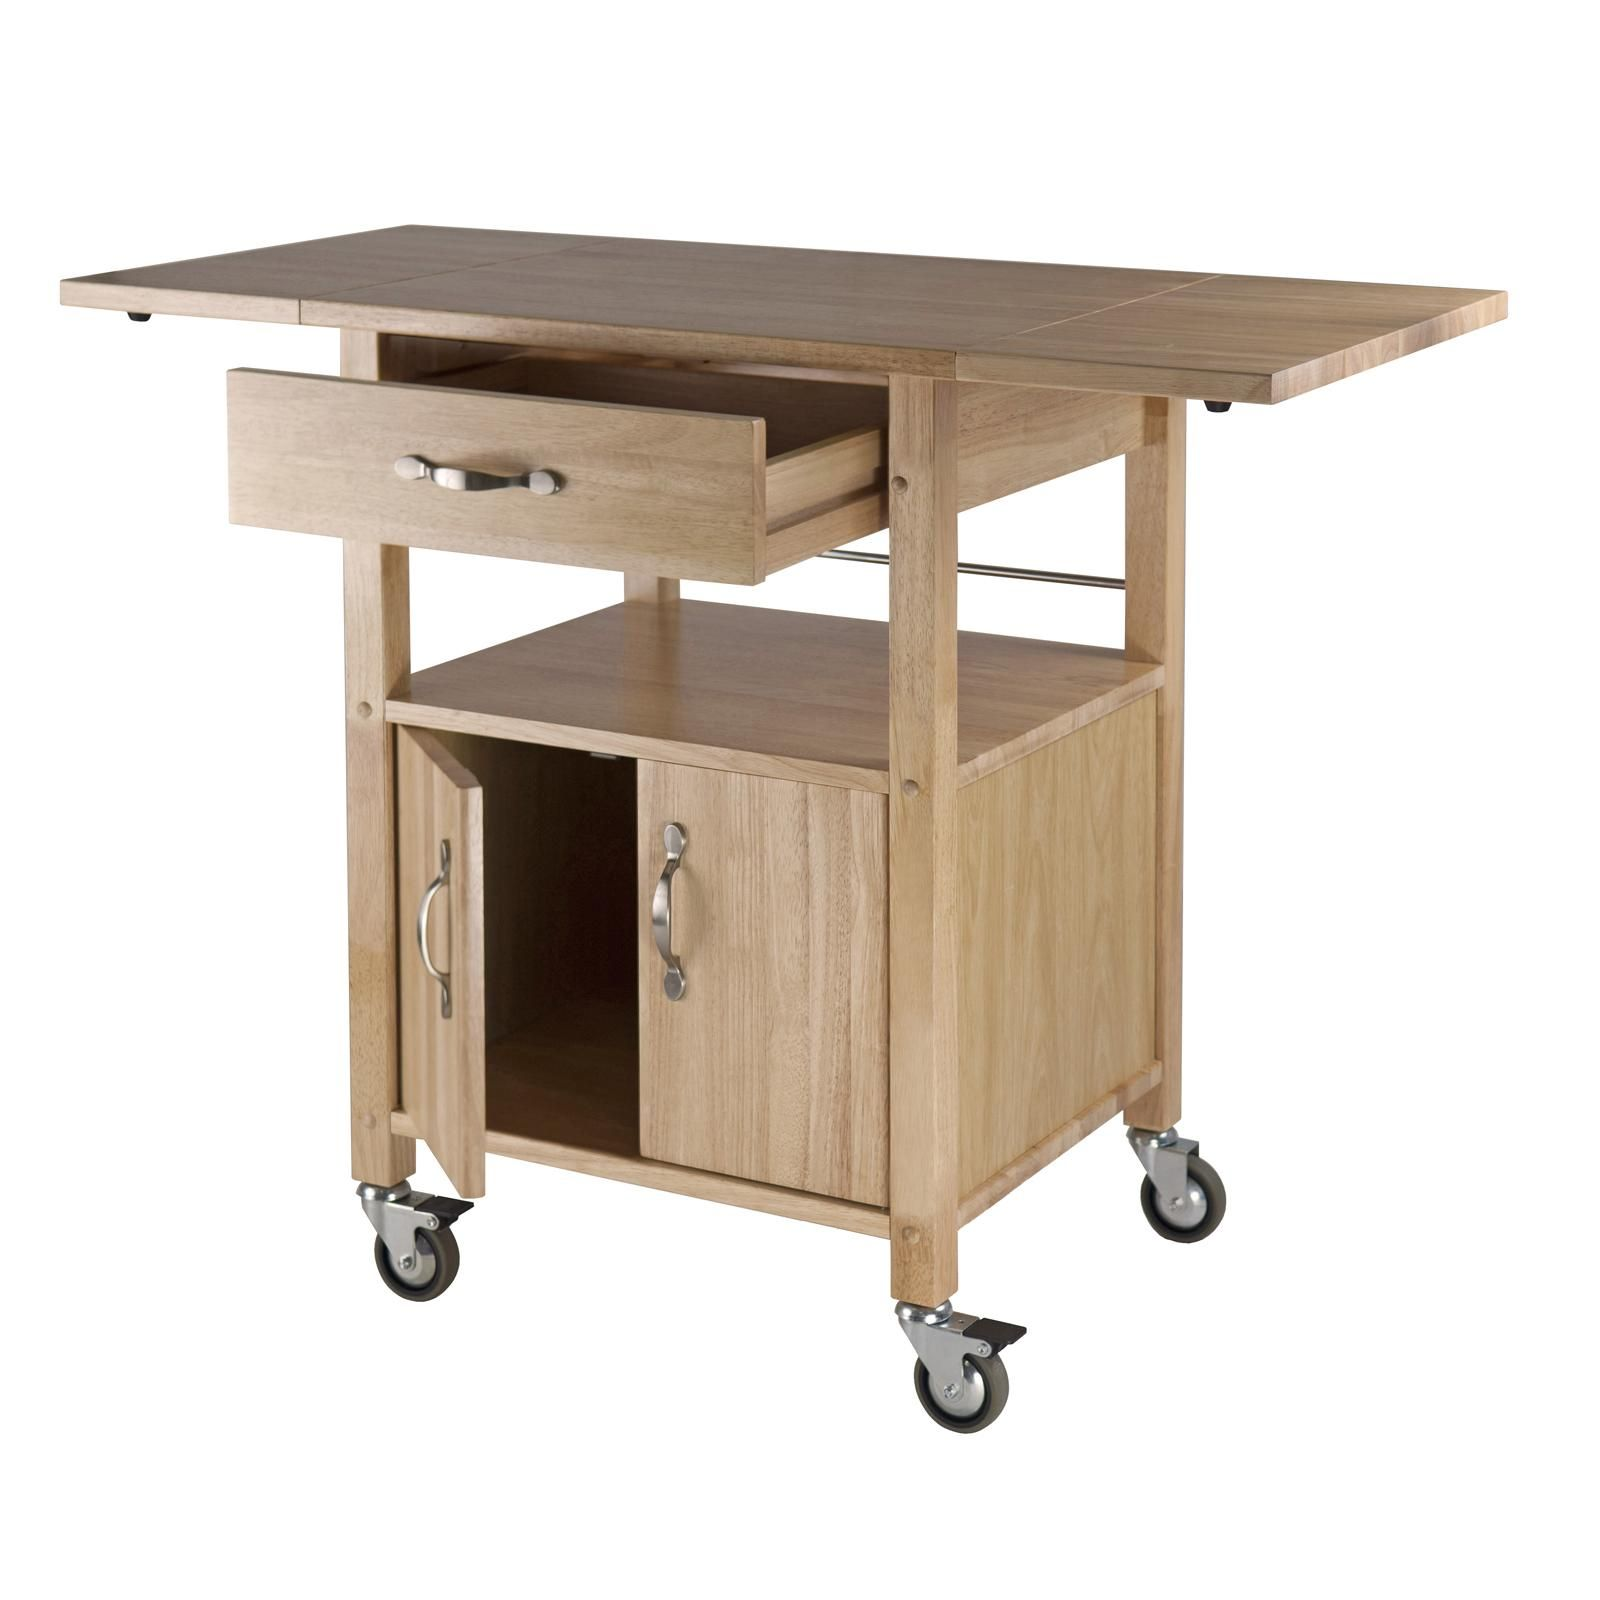 Drop Leaf Kitchen Cart Rugs At Target Amazon Com Winsome Wood Bar Serving Carts